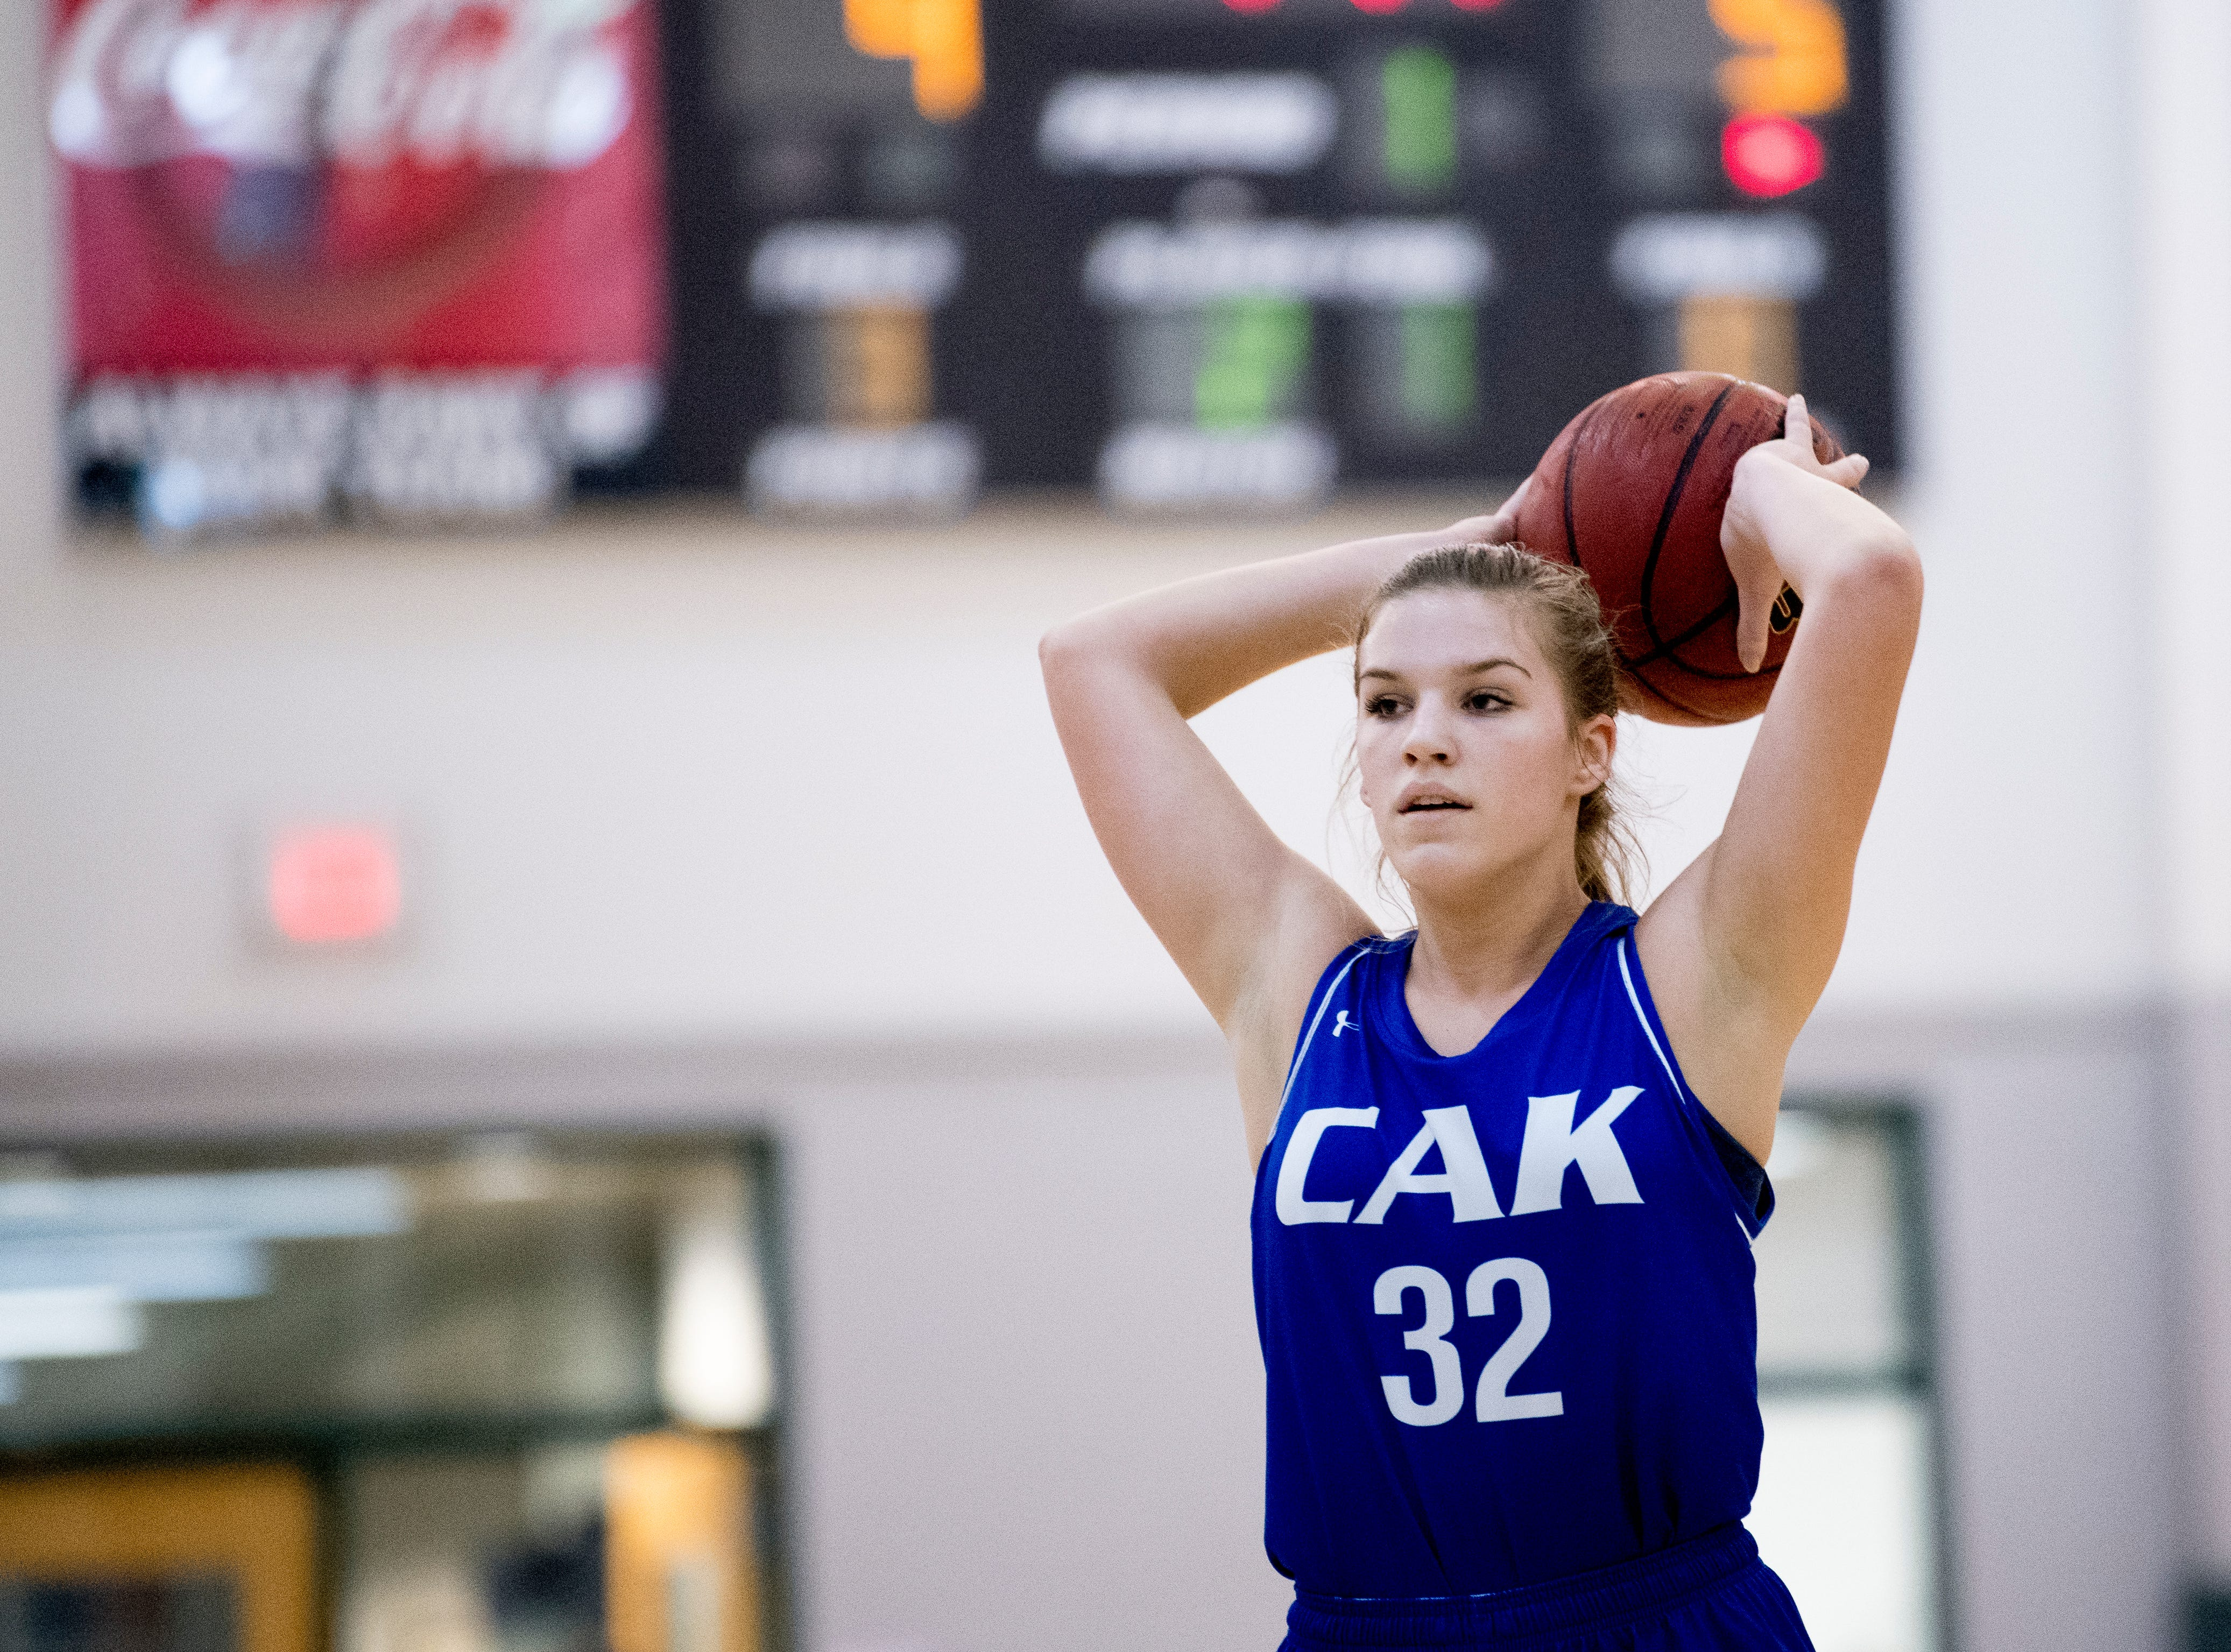 CAK's Mackenna Mozingo (32) looks to pass during a semifinal game between CAK and Silverdale at Webb School of Knoxville in Knoxville, Tennessee on Friday, February 15, 2019.